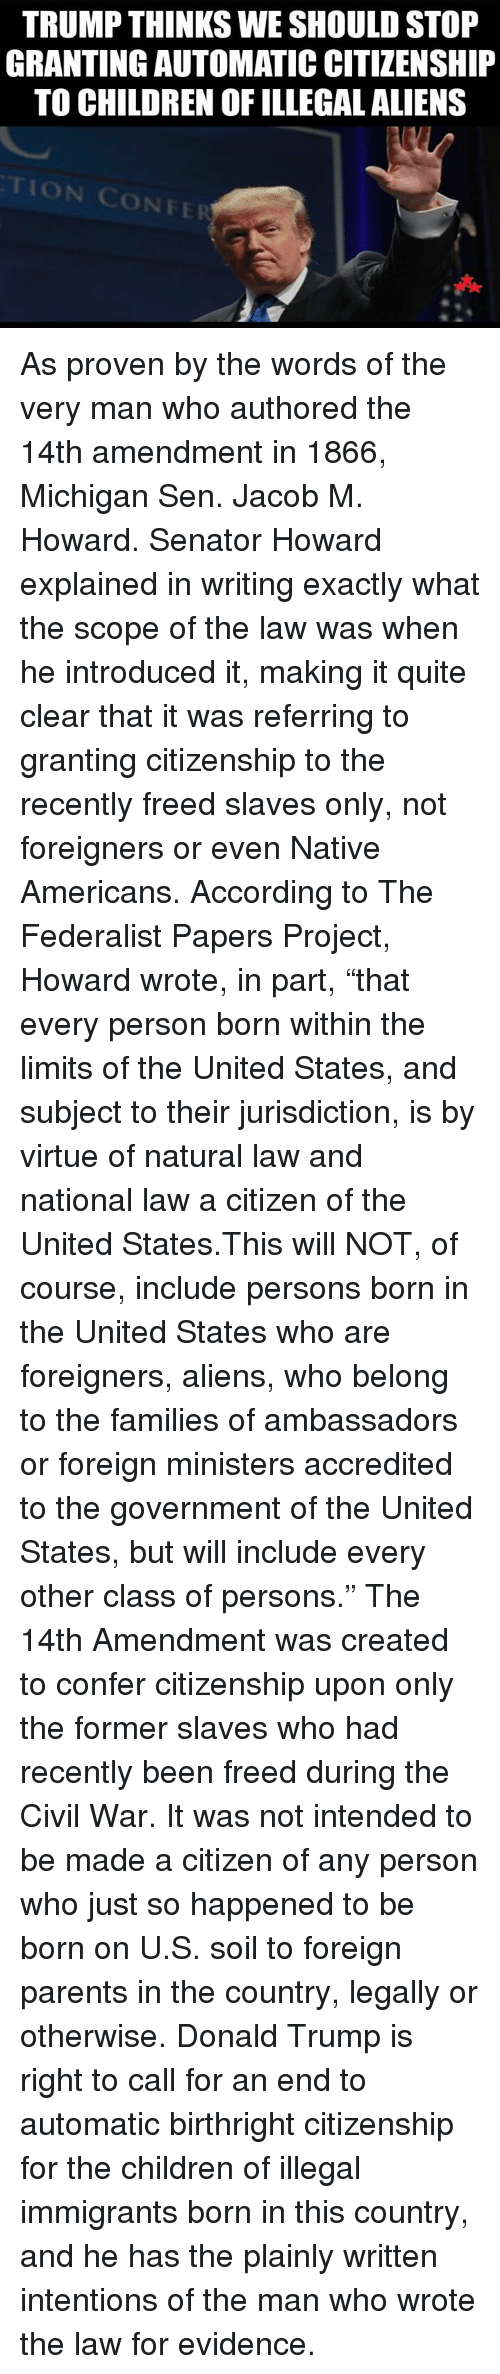 "Donald Trump, Memes, and Native American: TRUMP THINKS WE SHOULD STOP  GRANTING AUTOMATICCITIZENSHIP  TO CHILDREN OF ILLEGAL ALIENS As proven by the words of the very man who authored the 14th amendment in 1866, Michigan Sen. Jacob M. Howard. Senator Howard explained in writing exactly what the scope of the law was when he introduced it, making it quite clear that it was referring to granting citizenship to the recently freed slaves only, not foreigners or even Native Americans.  According to The Federalist Papers Project, Howard wrote, in part, ""that every person born within the limits of the United States, and subject to their jurisdiction, is by virtue of natural law and national law a citizen of the United States.This will NOT, of course, include persons born in the United States who are foreigners, aliens, who belong to the families of ambassadors or foreign ministers accredited to the government of the United States, but will include every other class of persons.""  The 14th Amendment was created to confer citizenship upon only the former slaves who had recently been freed during the Civil War. It was not intended to be made a citizen of any person who just so happened to be born on U.S. soil to foreign parents in the country, legally or otherwise.  Donald Trump is right to call for an end to automatic birthright citizenship for the children of illegal immigrants born in this country, and he has the plainly written intentions of the man who wrote the law for evidence."